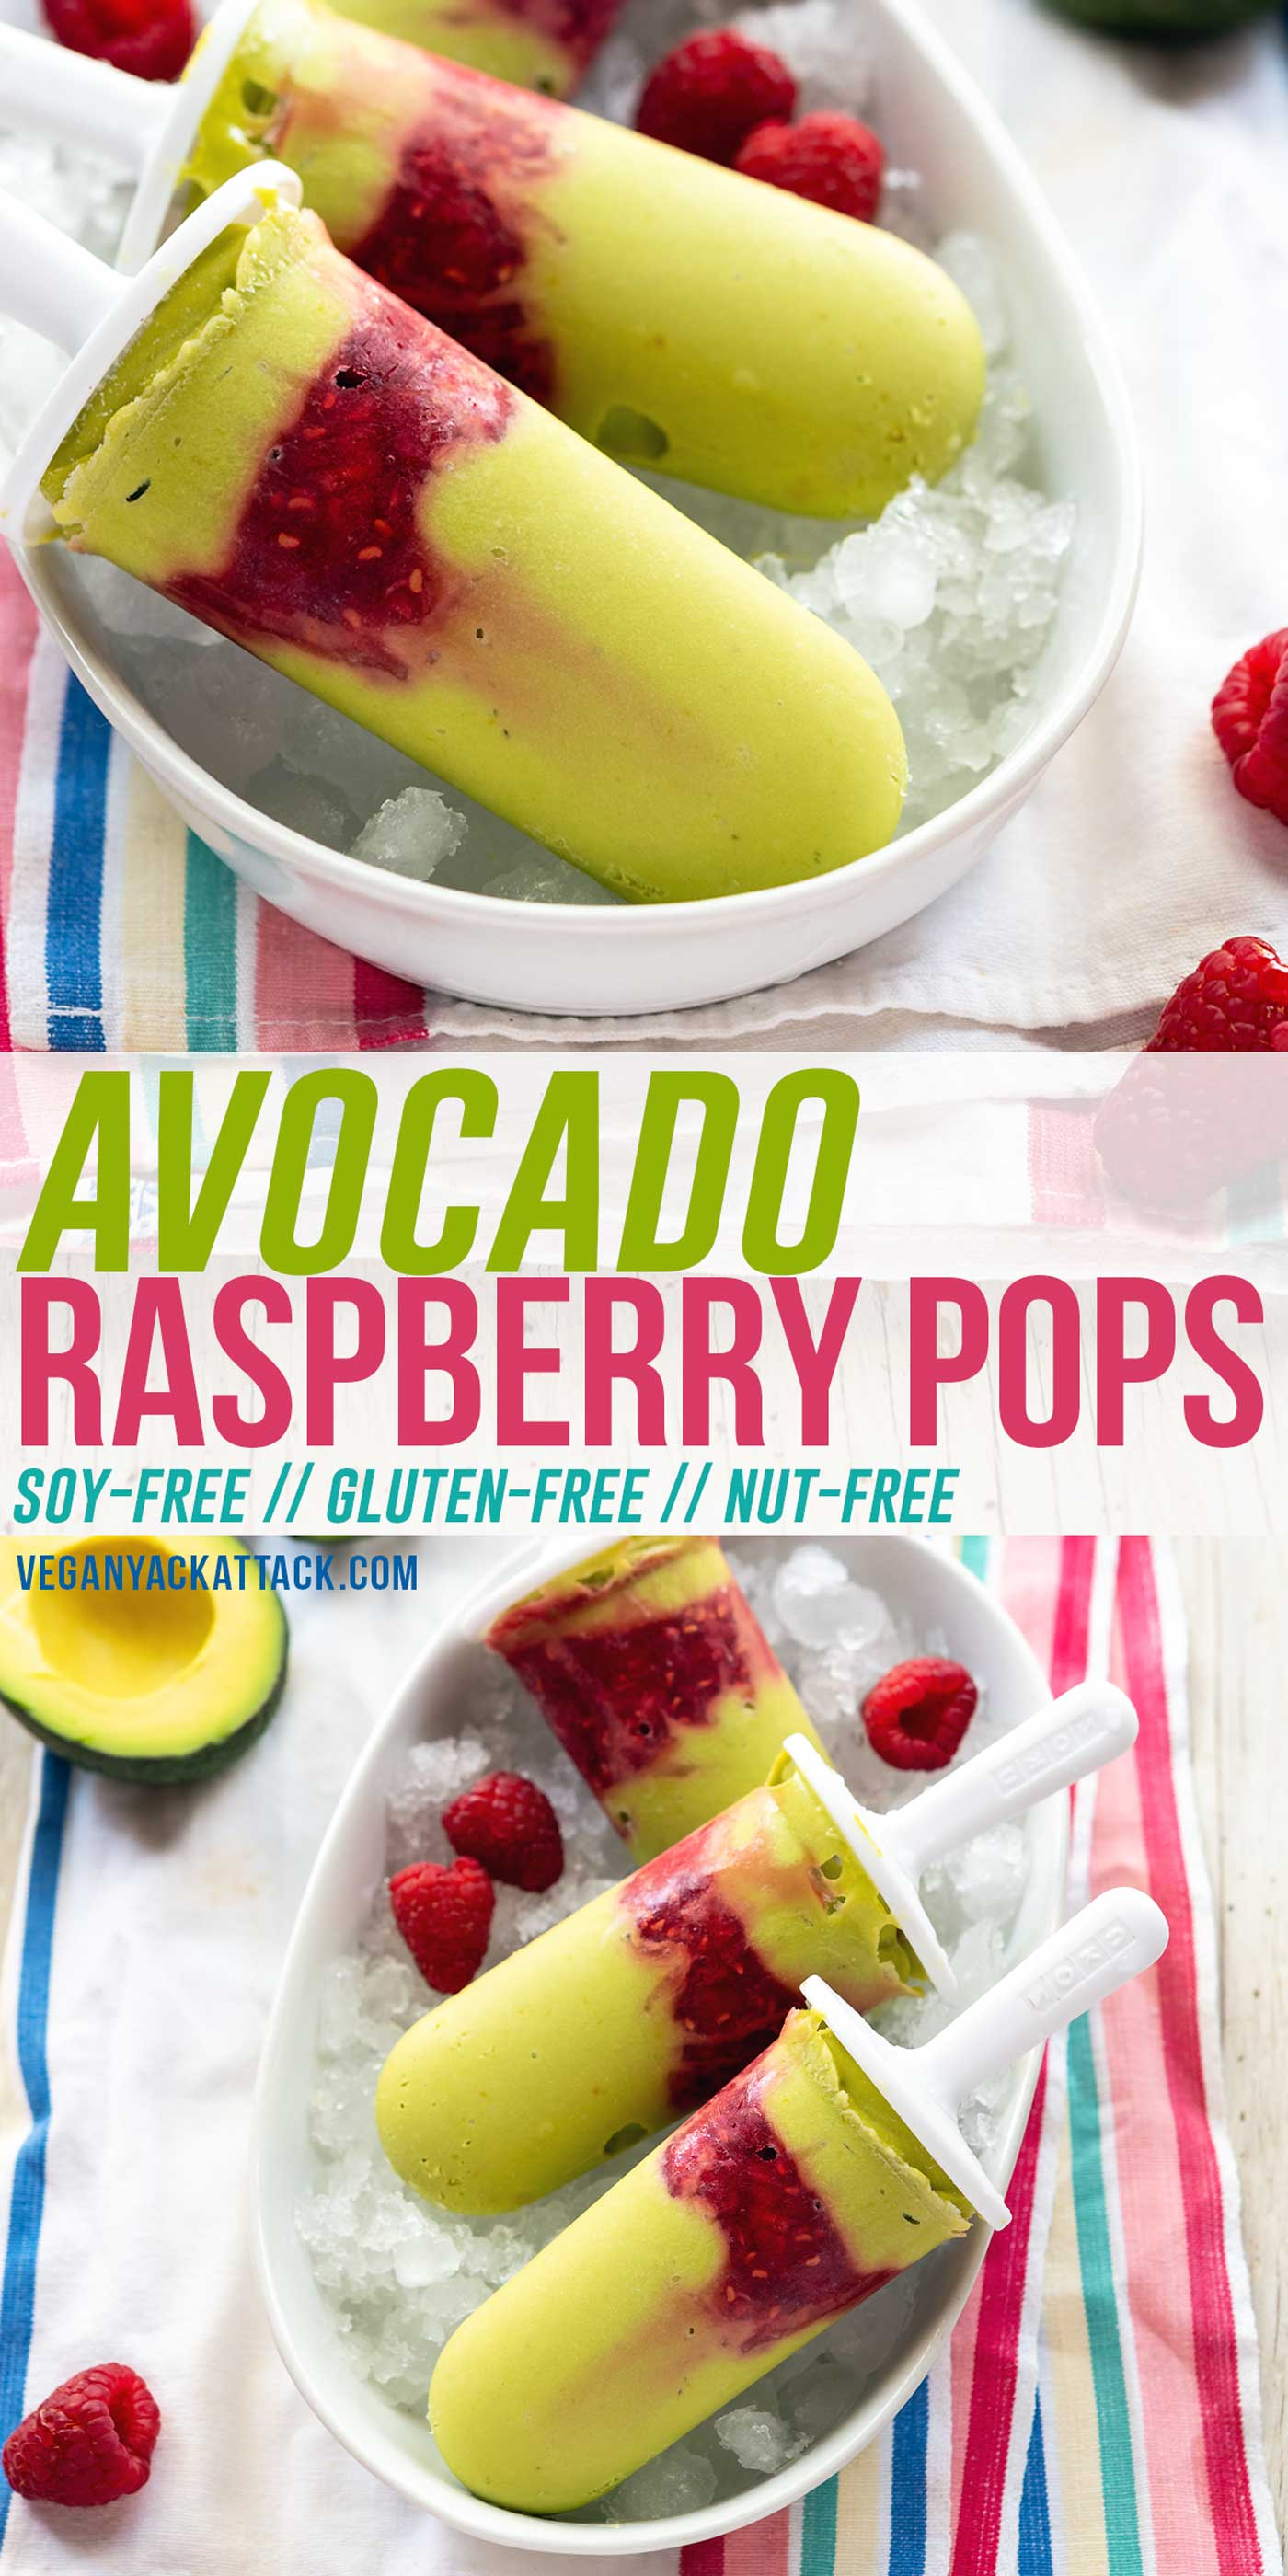 Ultra-creamy, plant-based popsicles made with avocados, lemon, and tart raspberries! These Avocado Raspberry Pops take only 7 ingredients, and are soy-free, nut-free, and vegan.